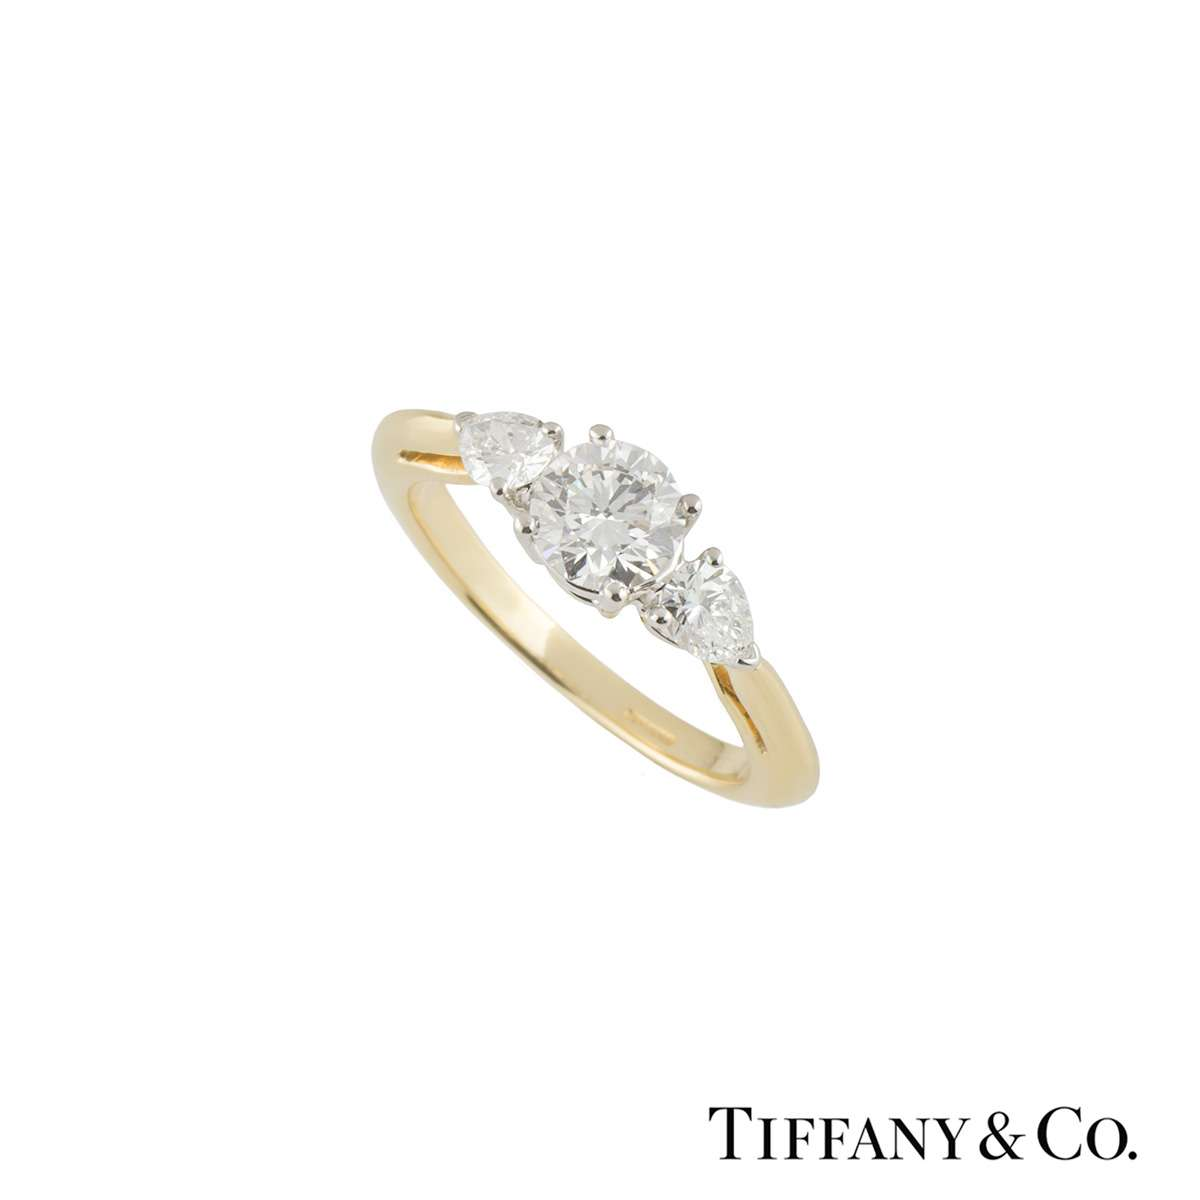 Tiffany & Co. Yellow Gold Three Stone Diamond Ring